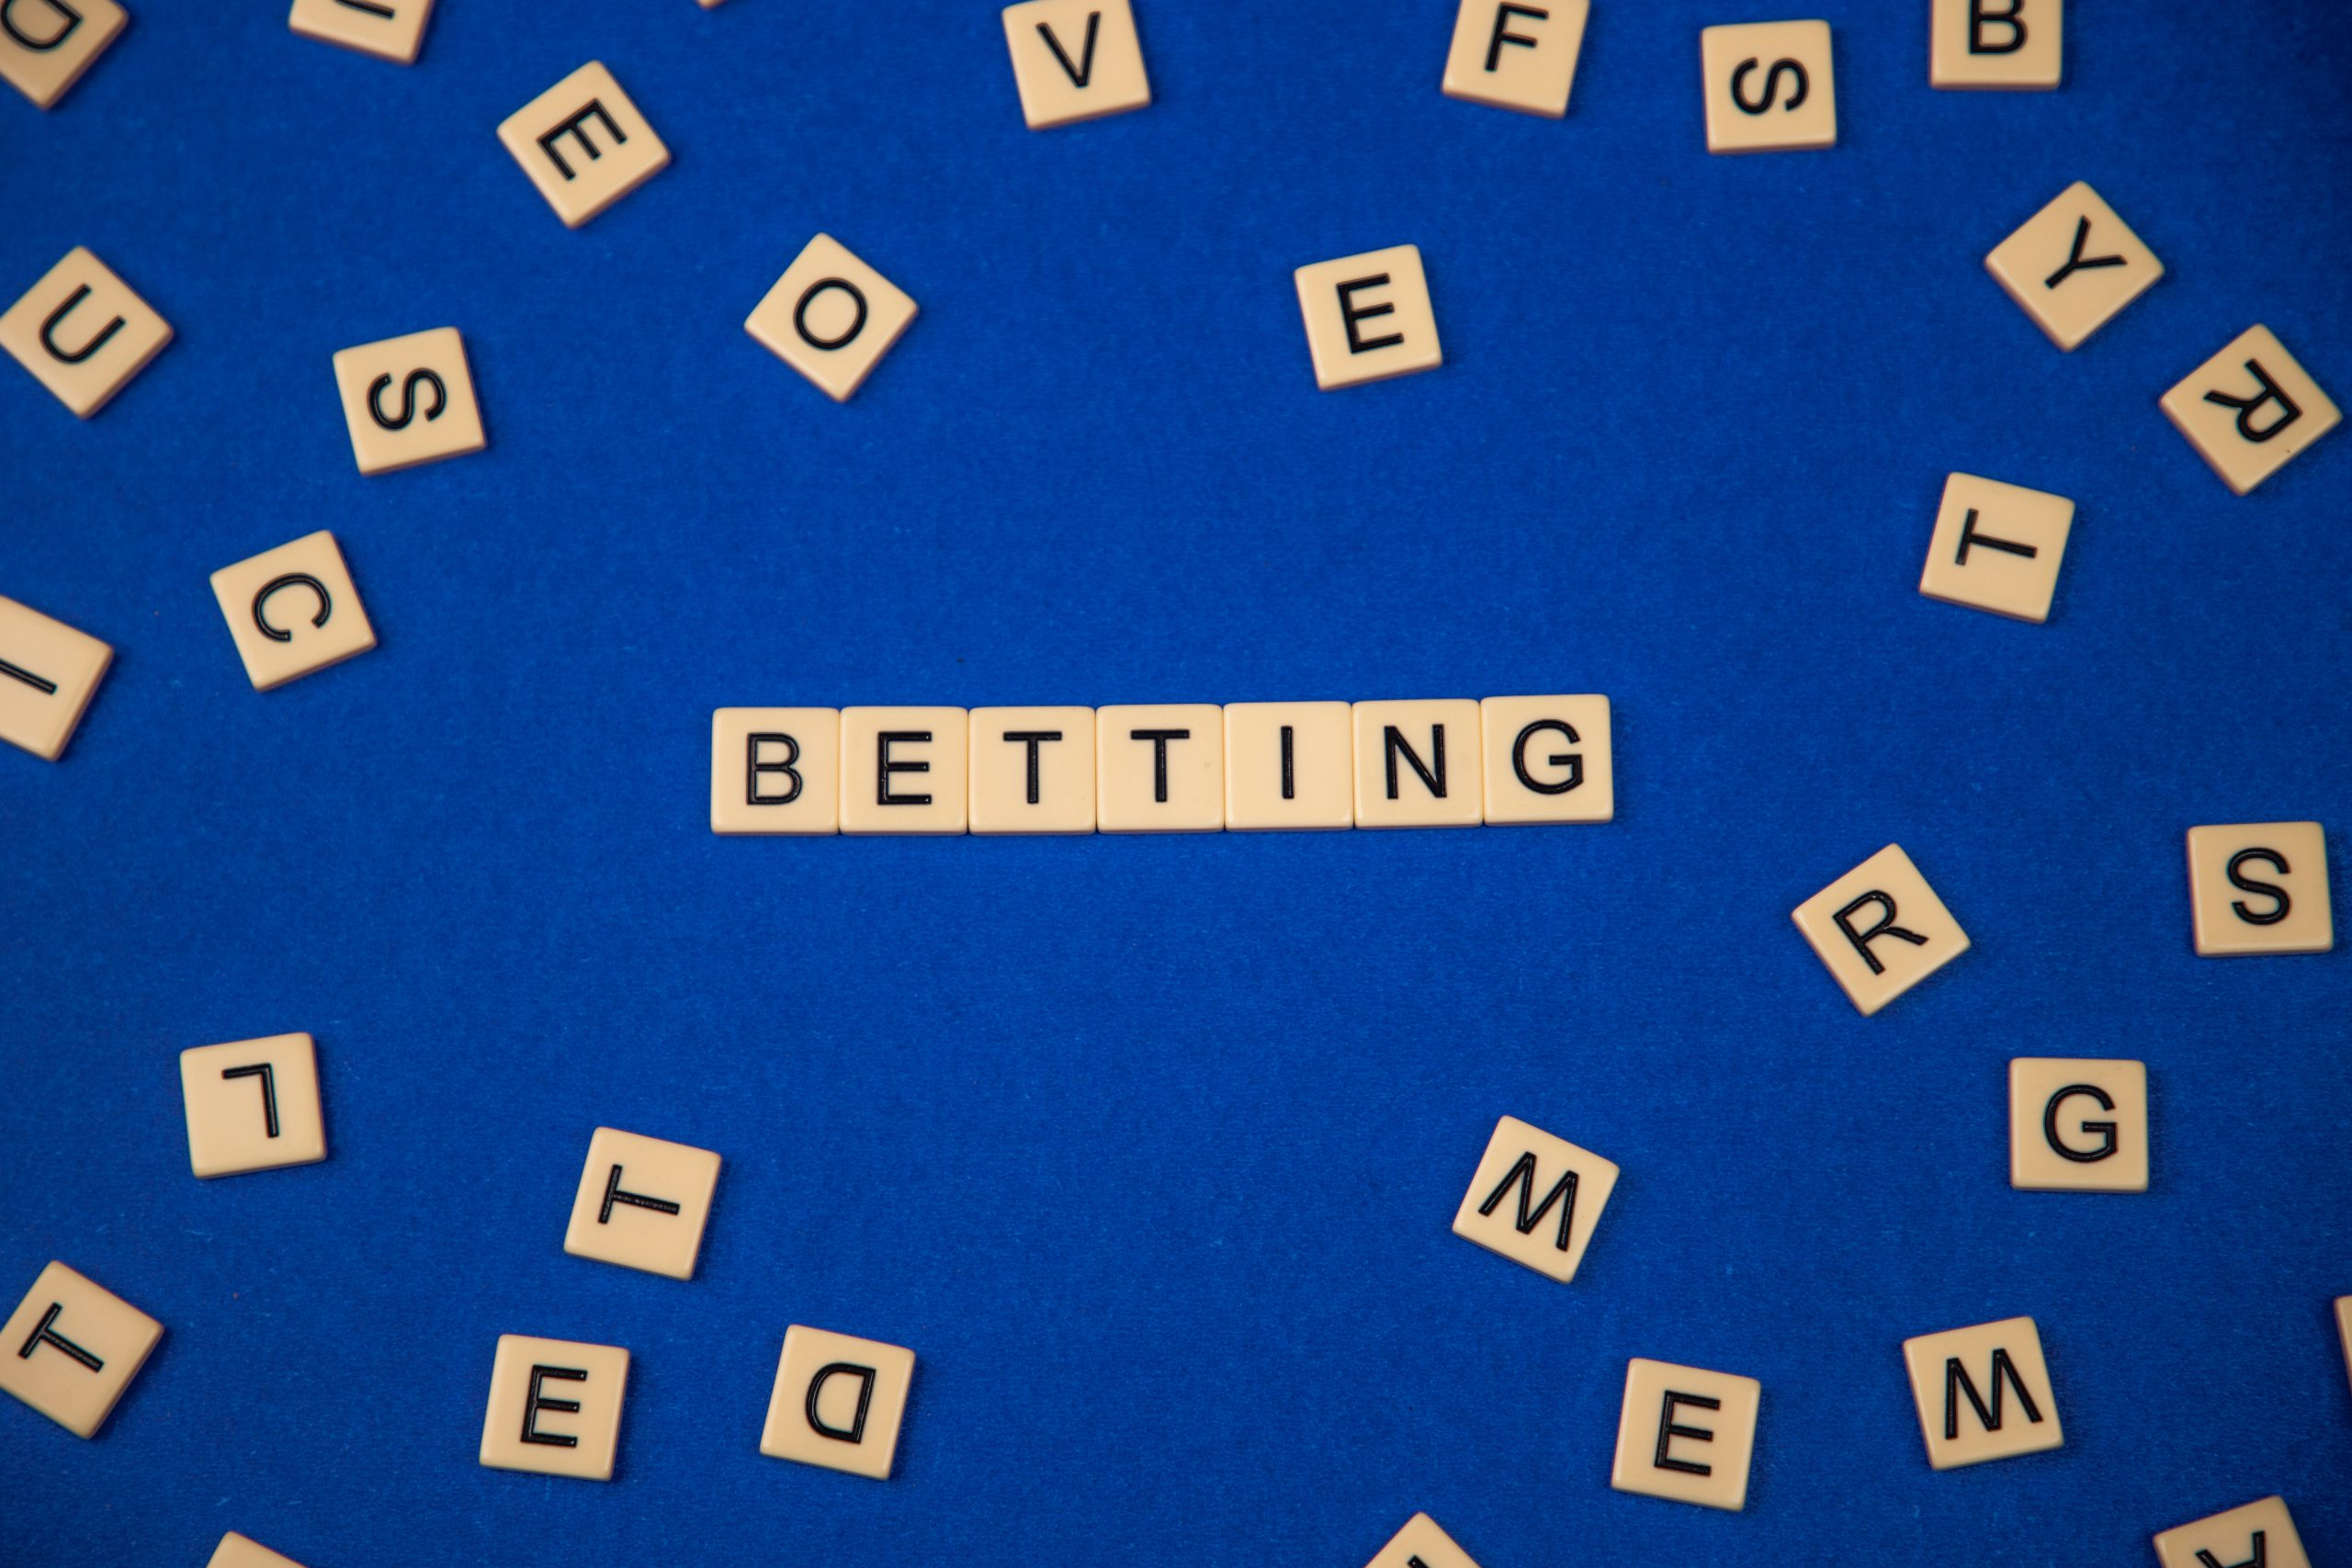 Word Betting written with scrabble tiles